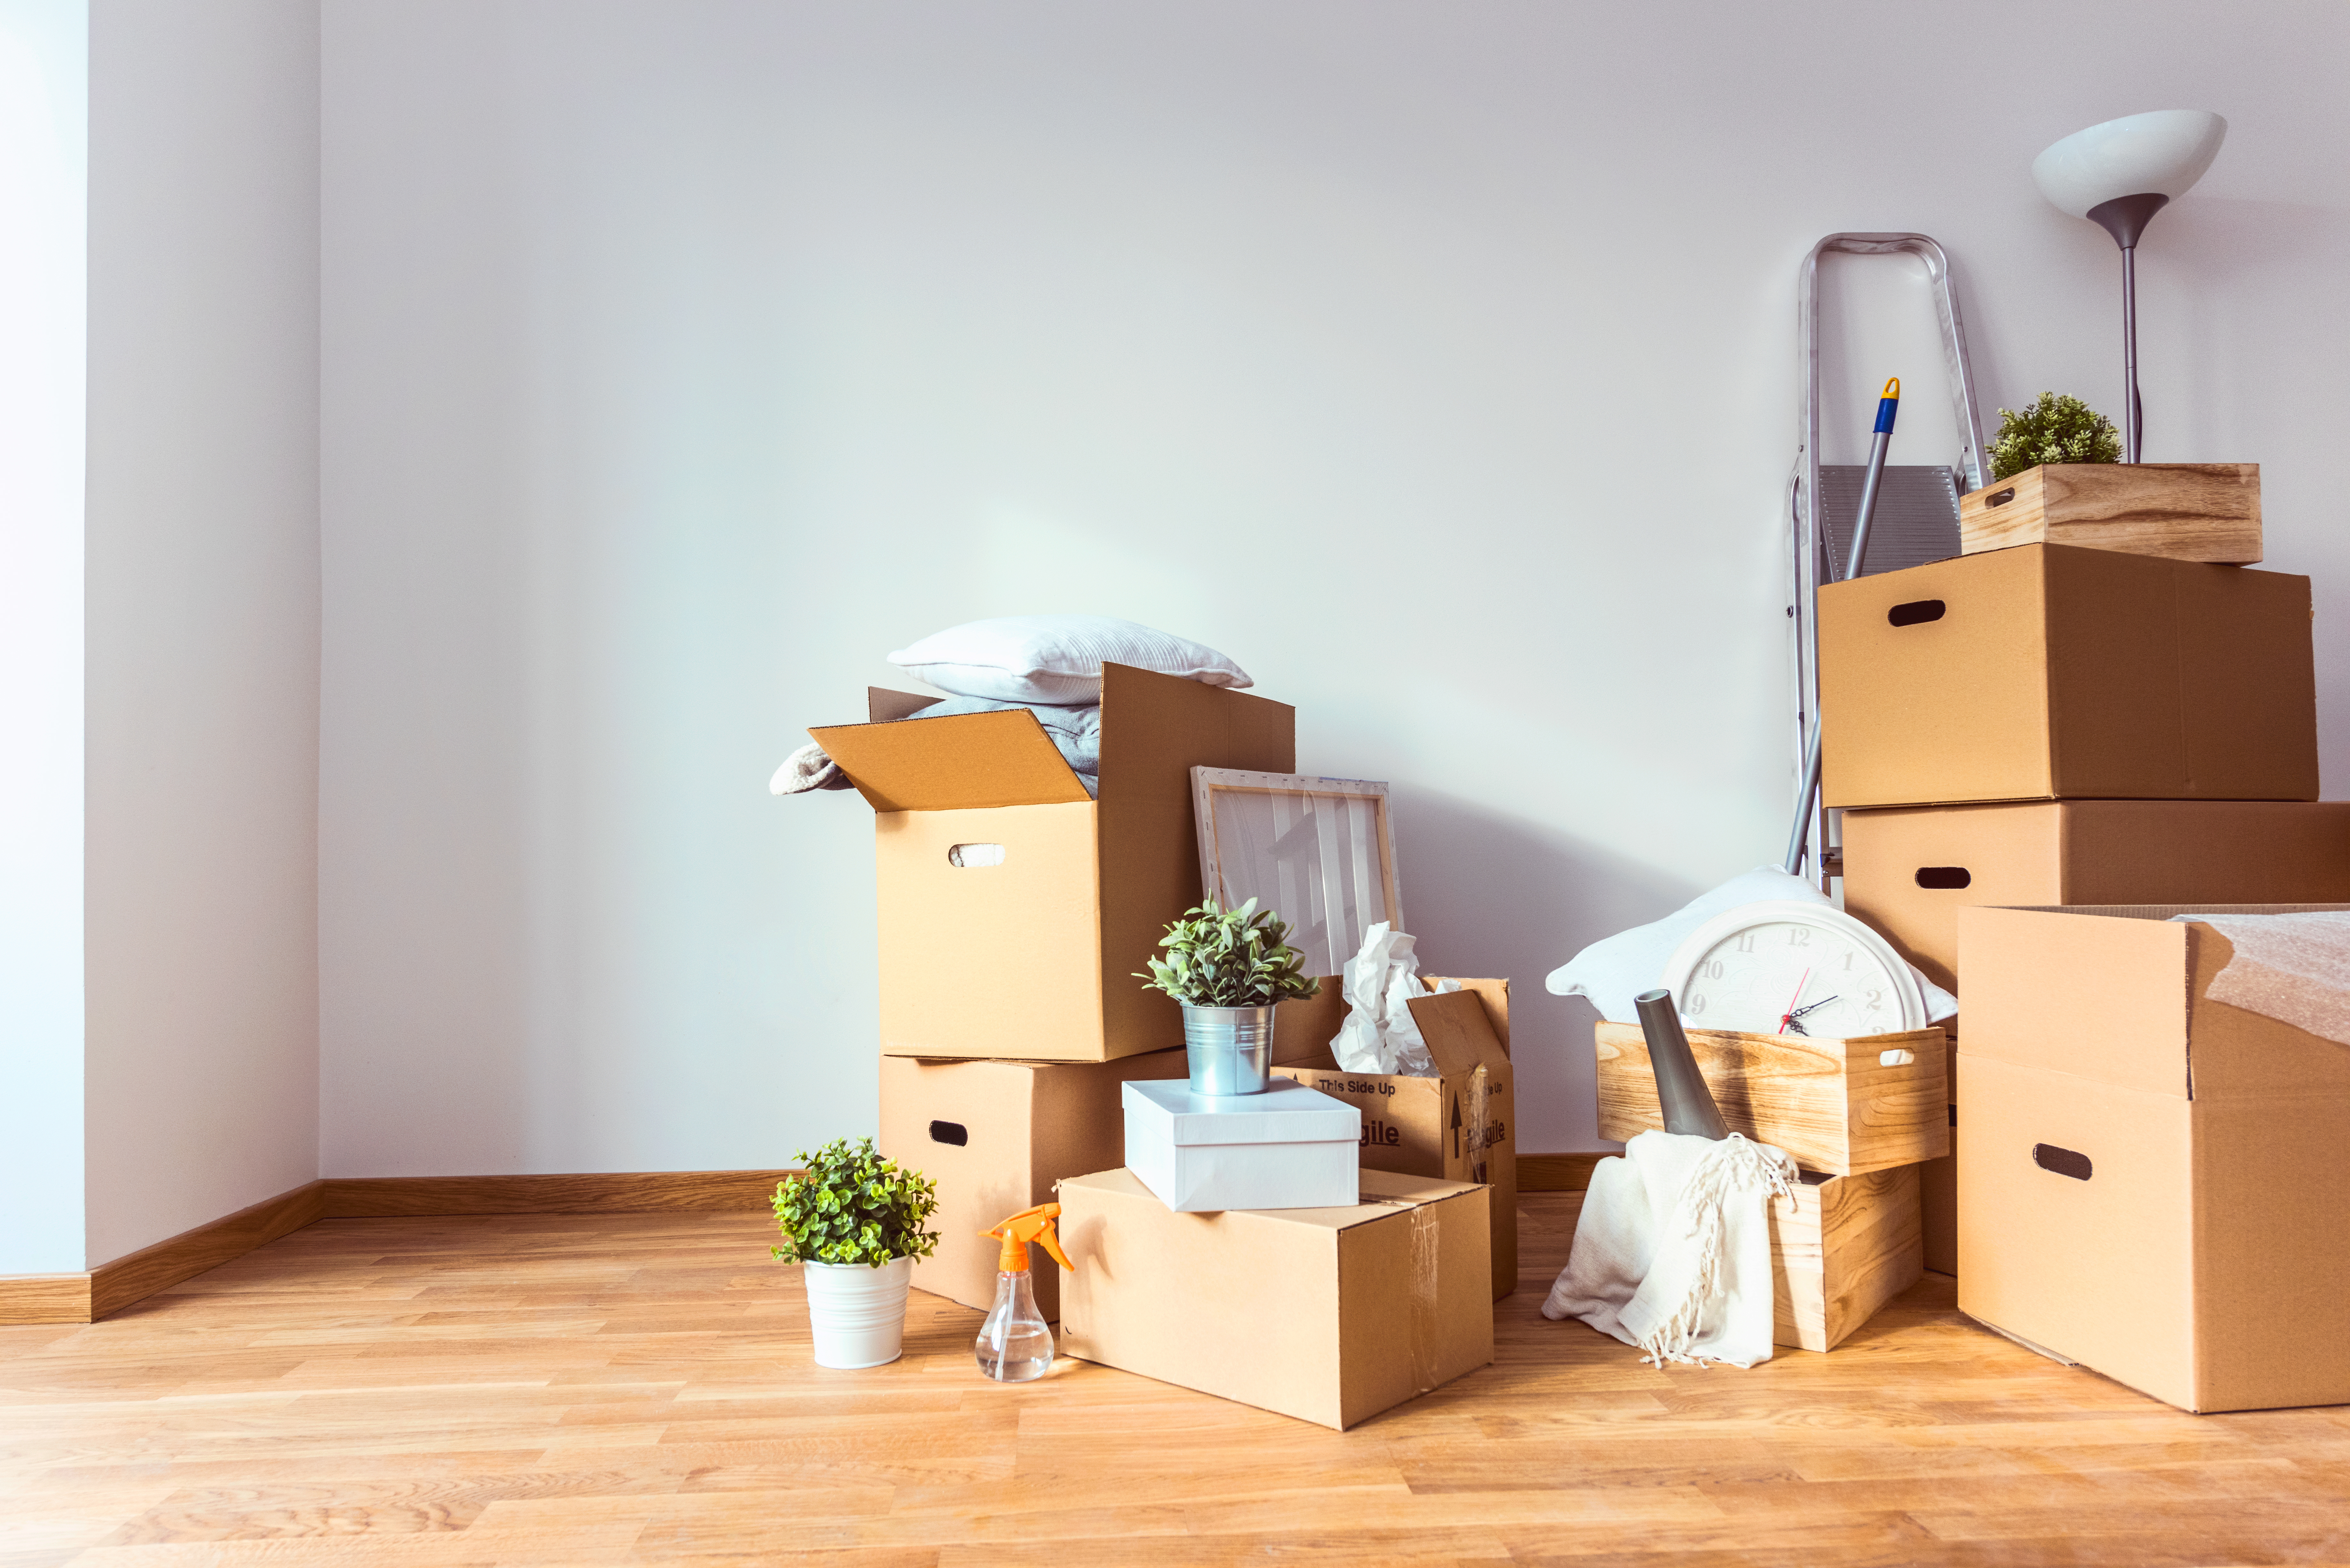 What Issues Need to be Addressed in Move Away Cases